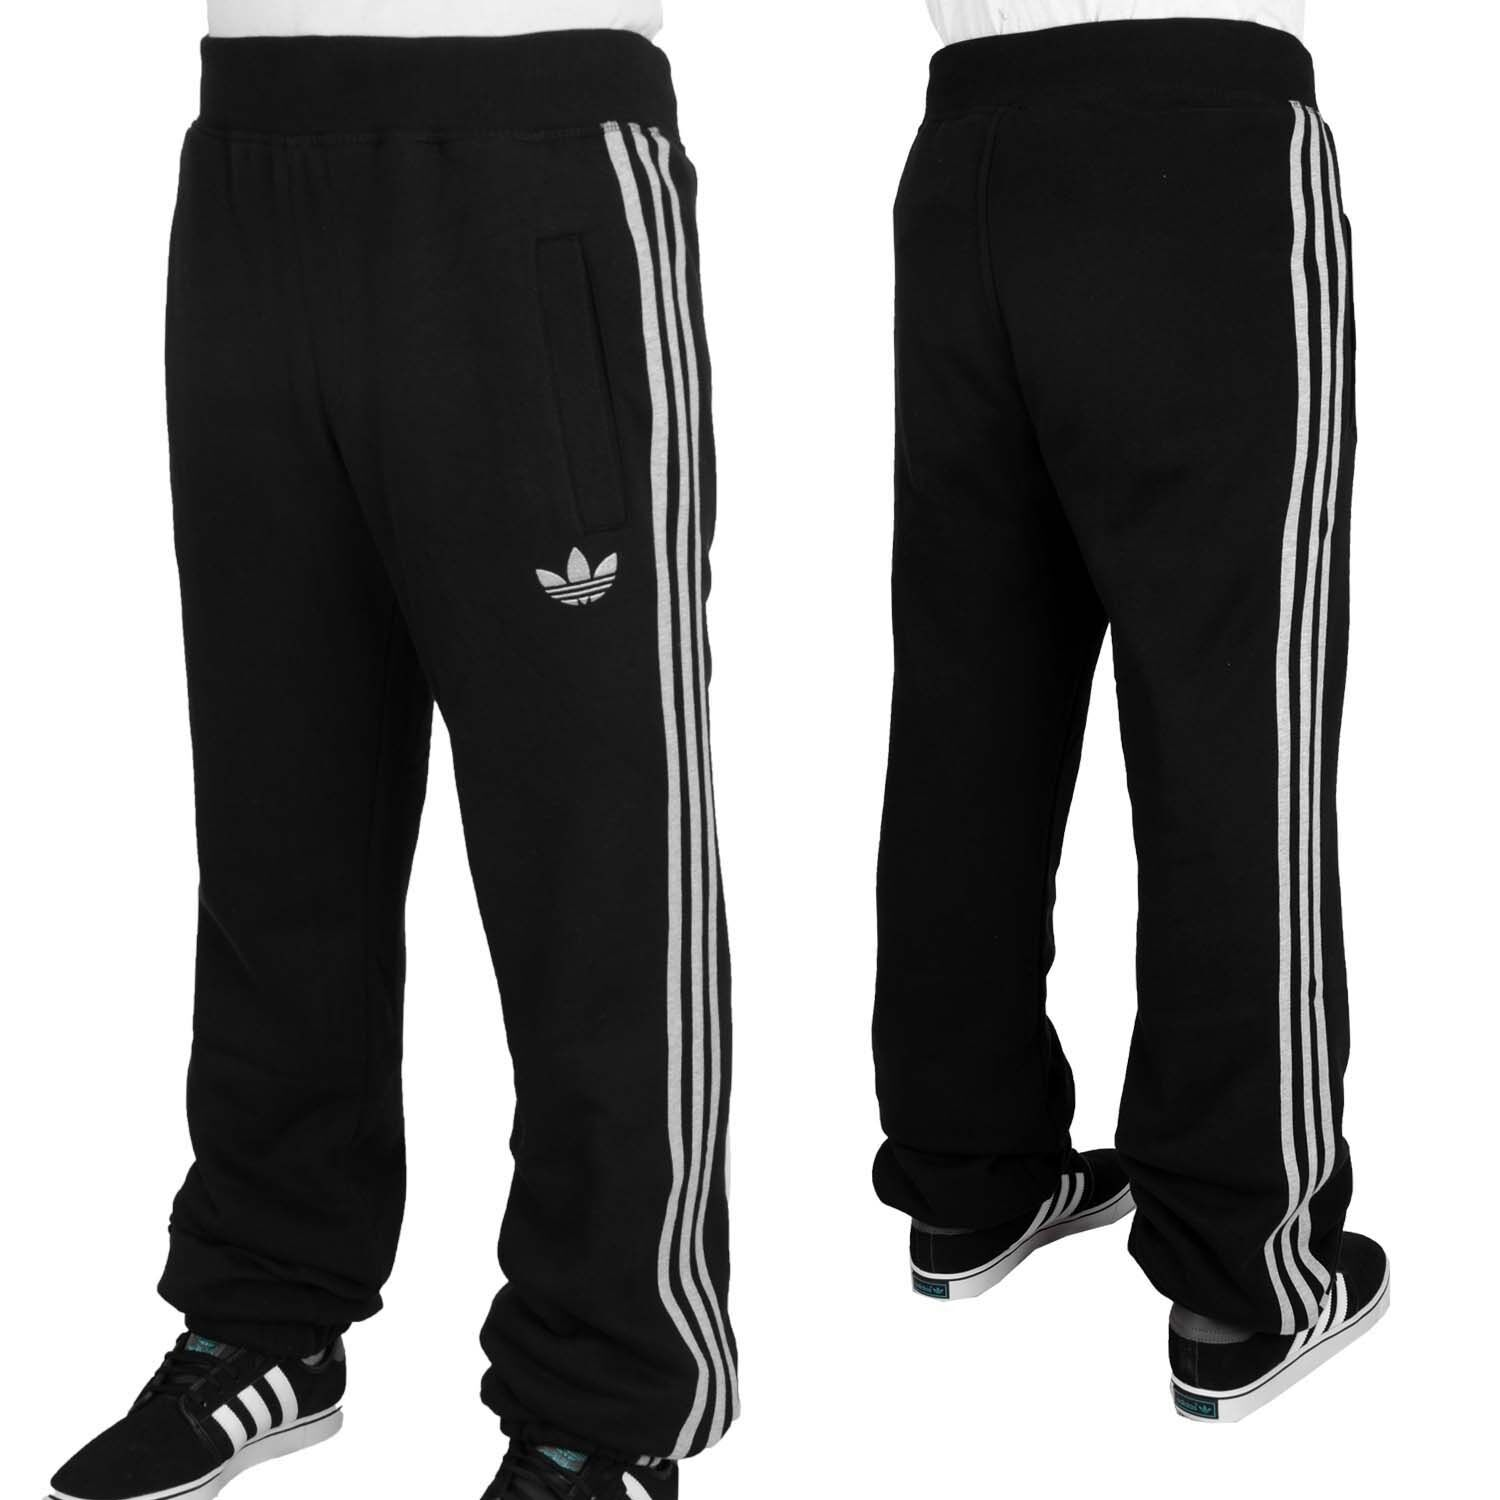 Adidas Originals SPO black grey mens fleece training sweat pants